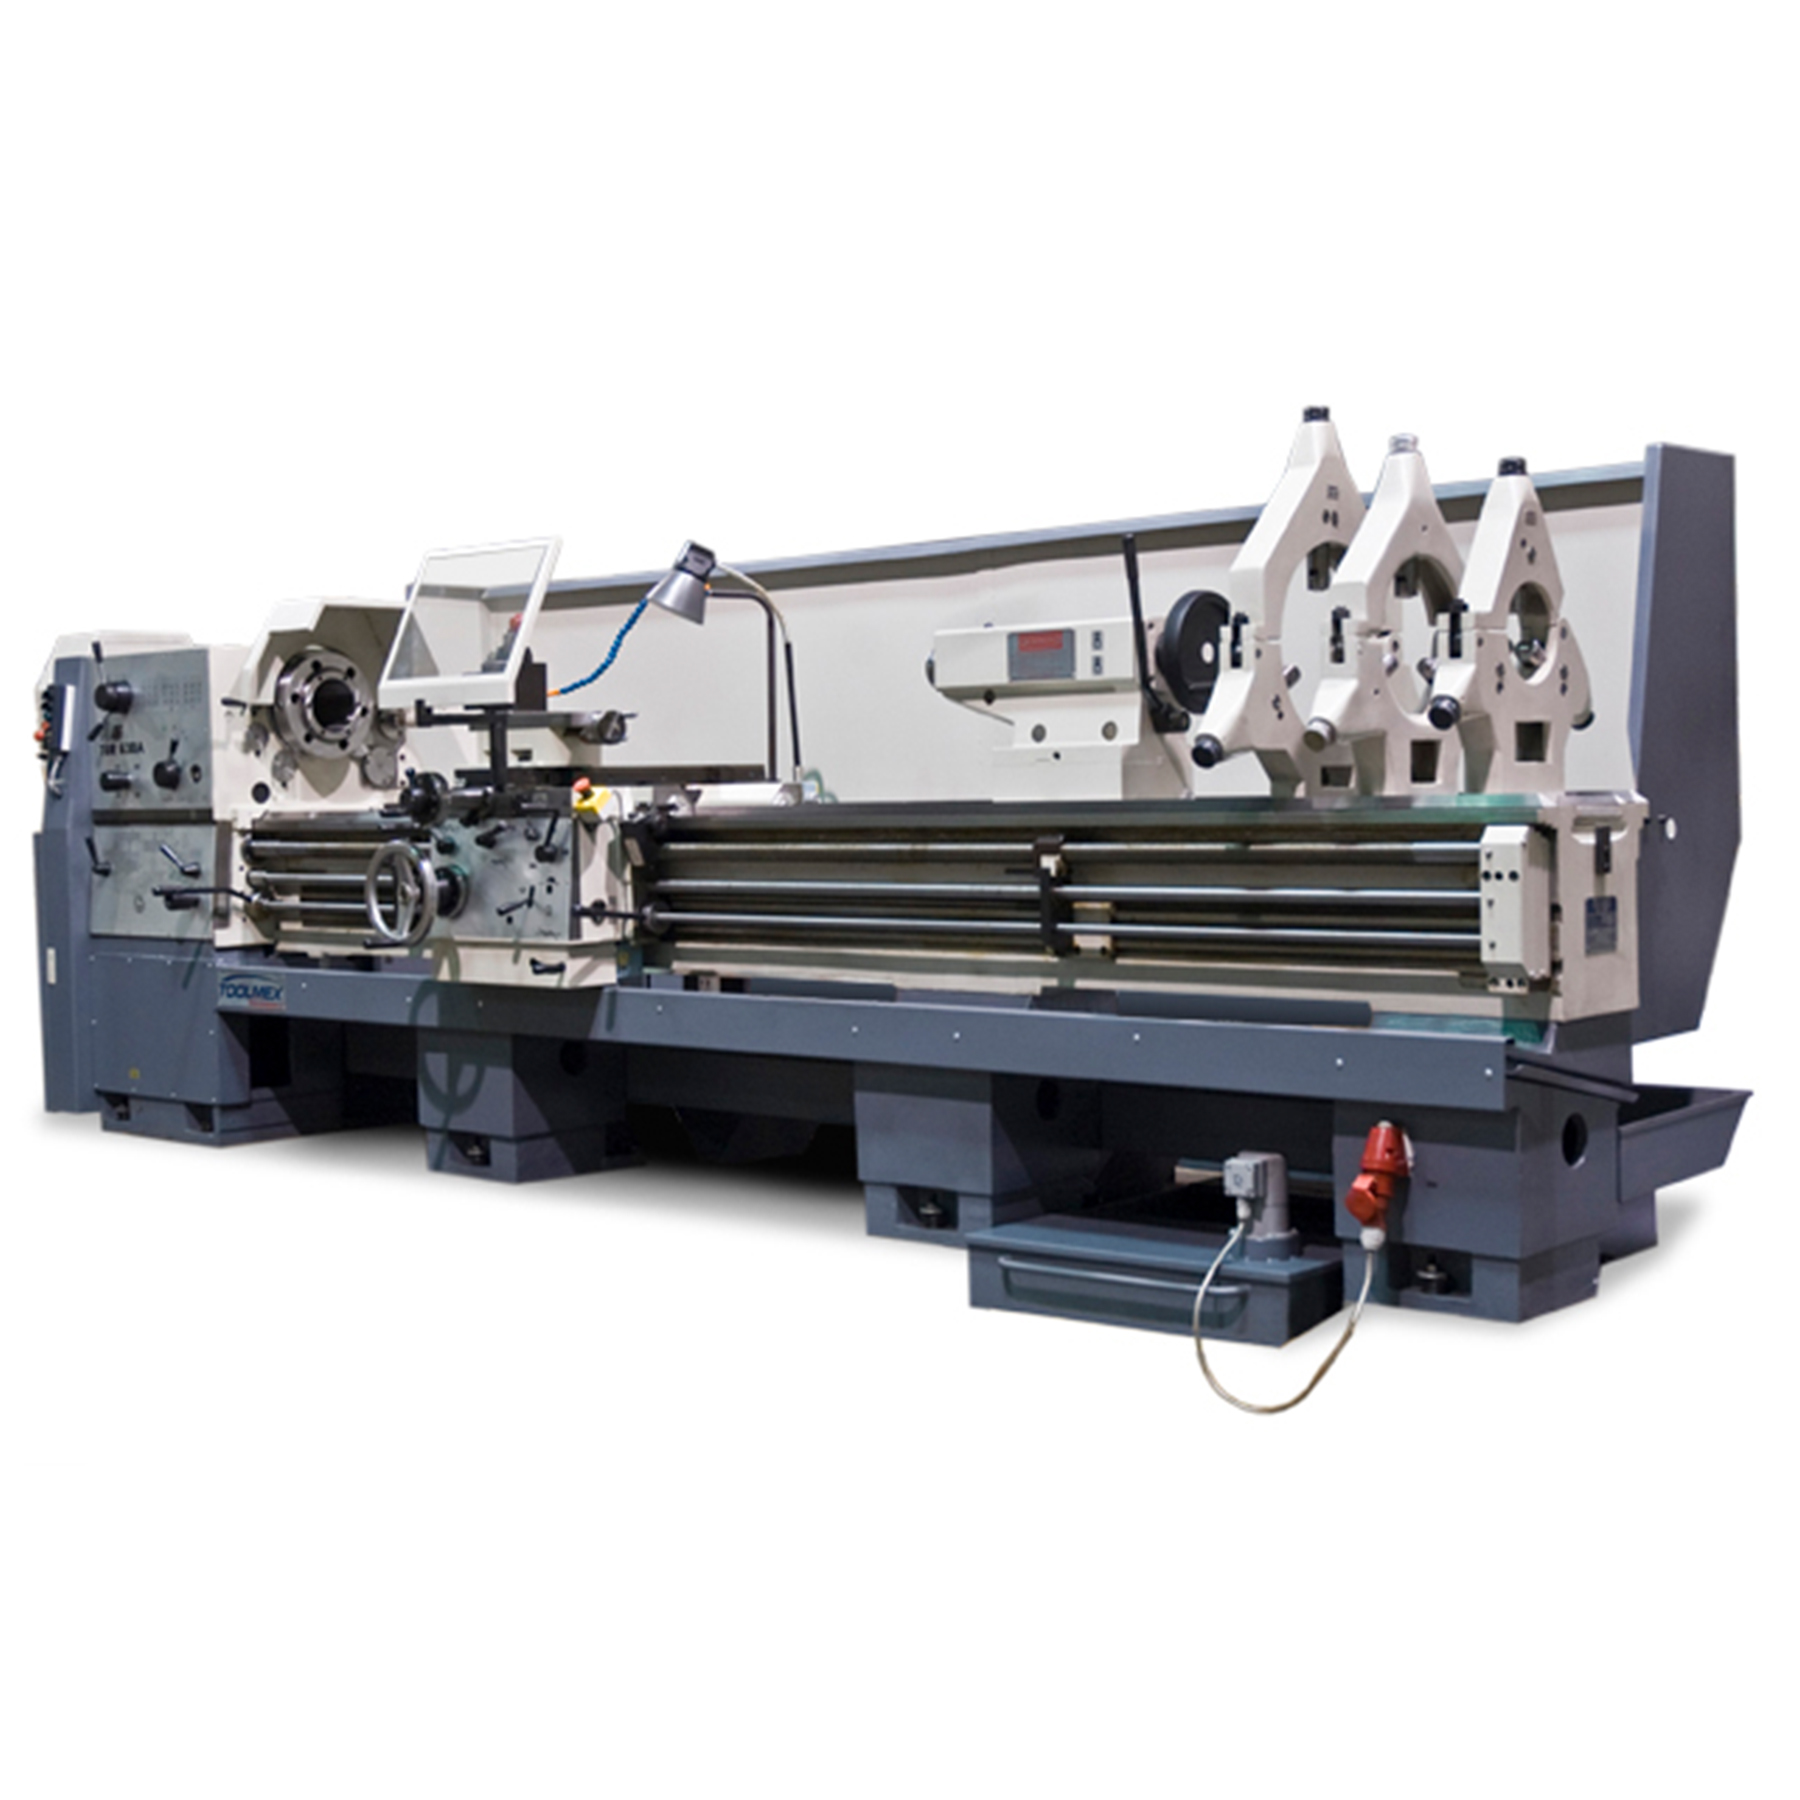 "25"" x 120"" New Wafum Heavy Duty Engine Lathe for sale at Worldwide Machine Tool in Columbus Ohio call 614-255-9000"